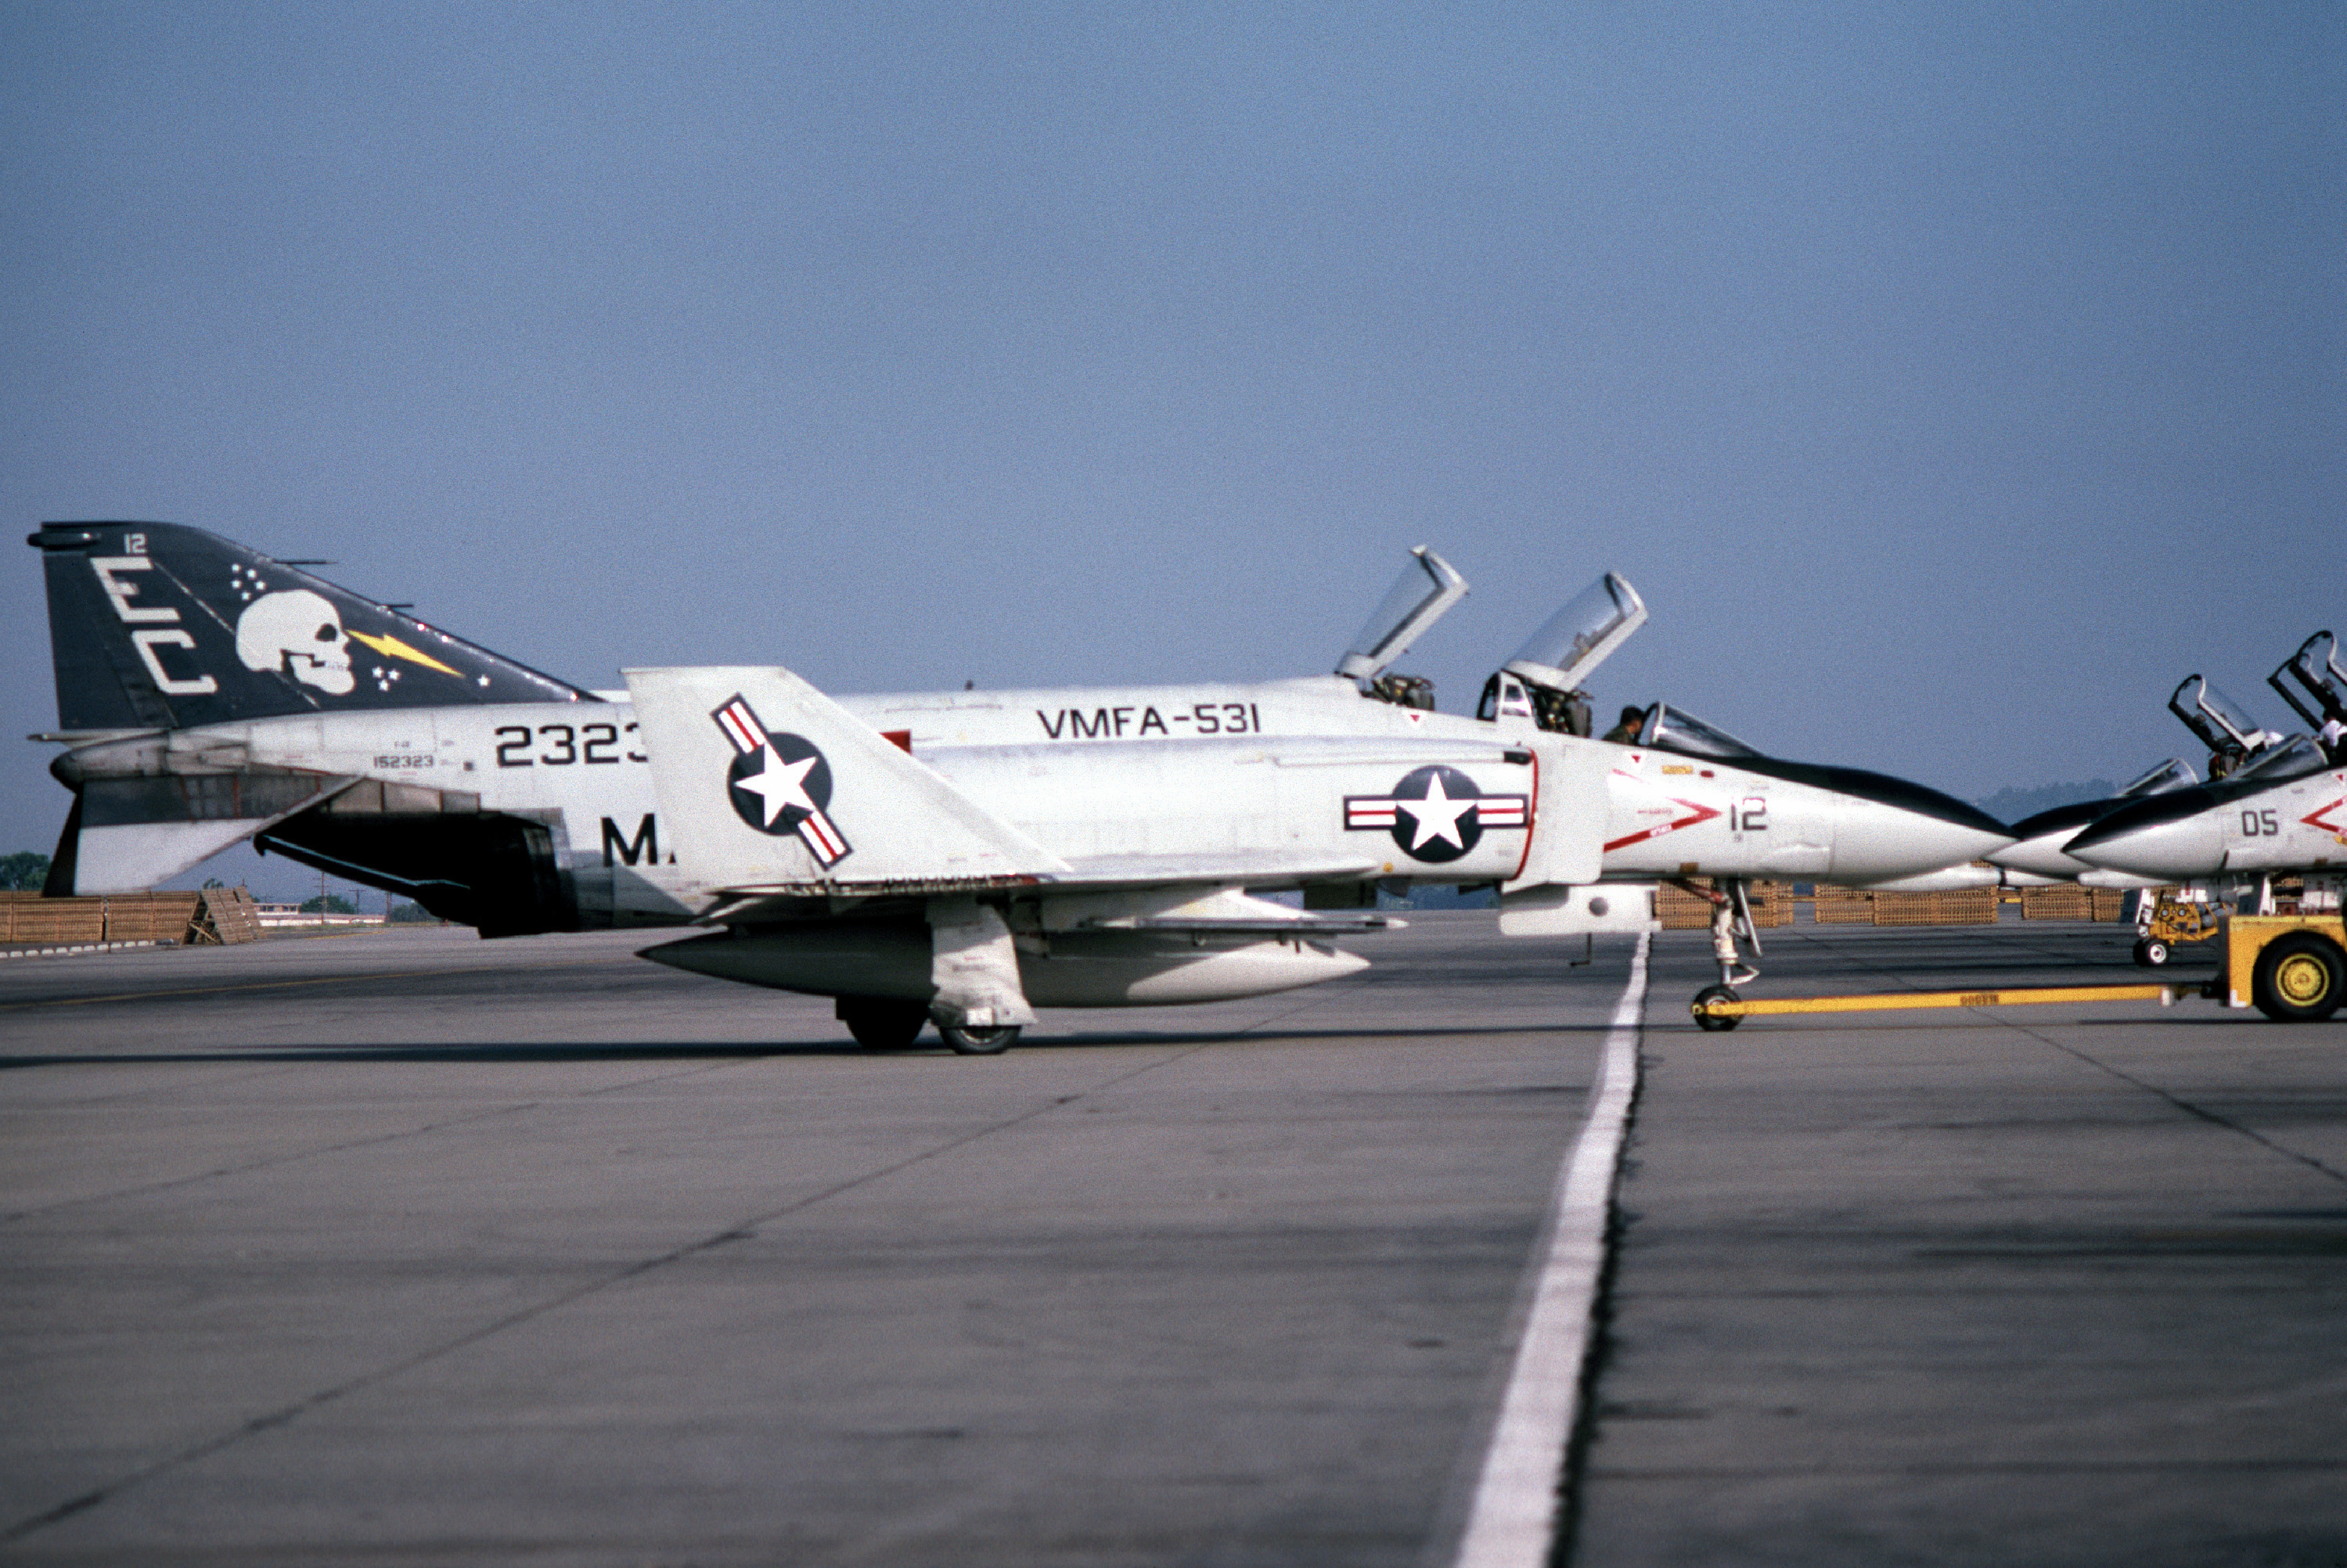 File:F-4N Phantom VMFA-531 ElToro 1982.jpeg